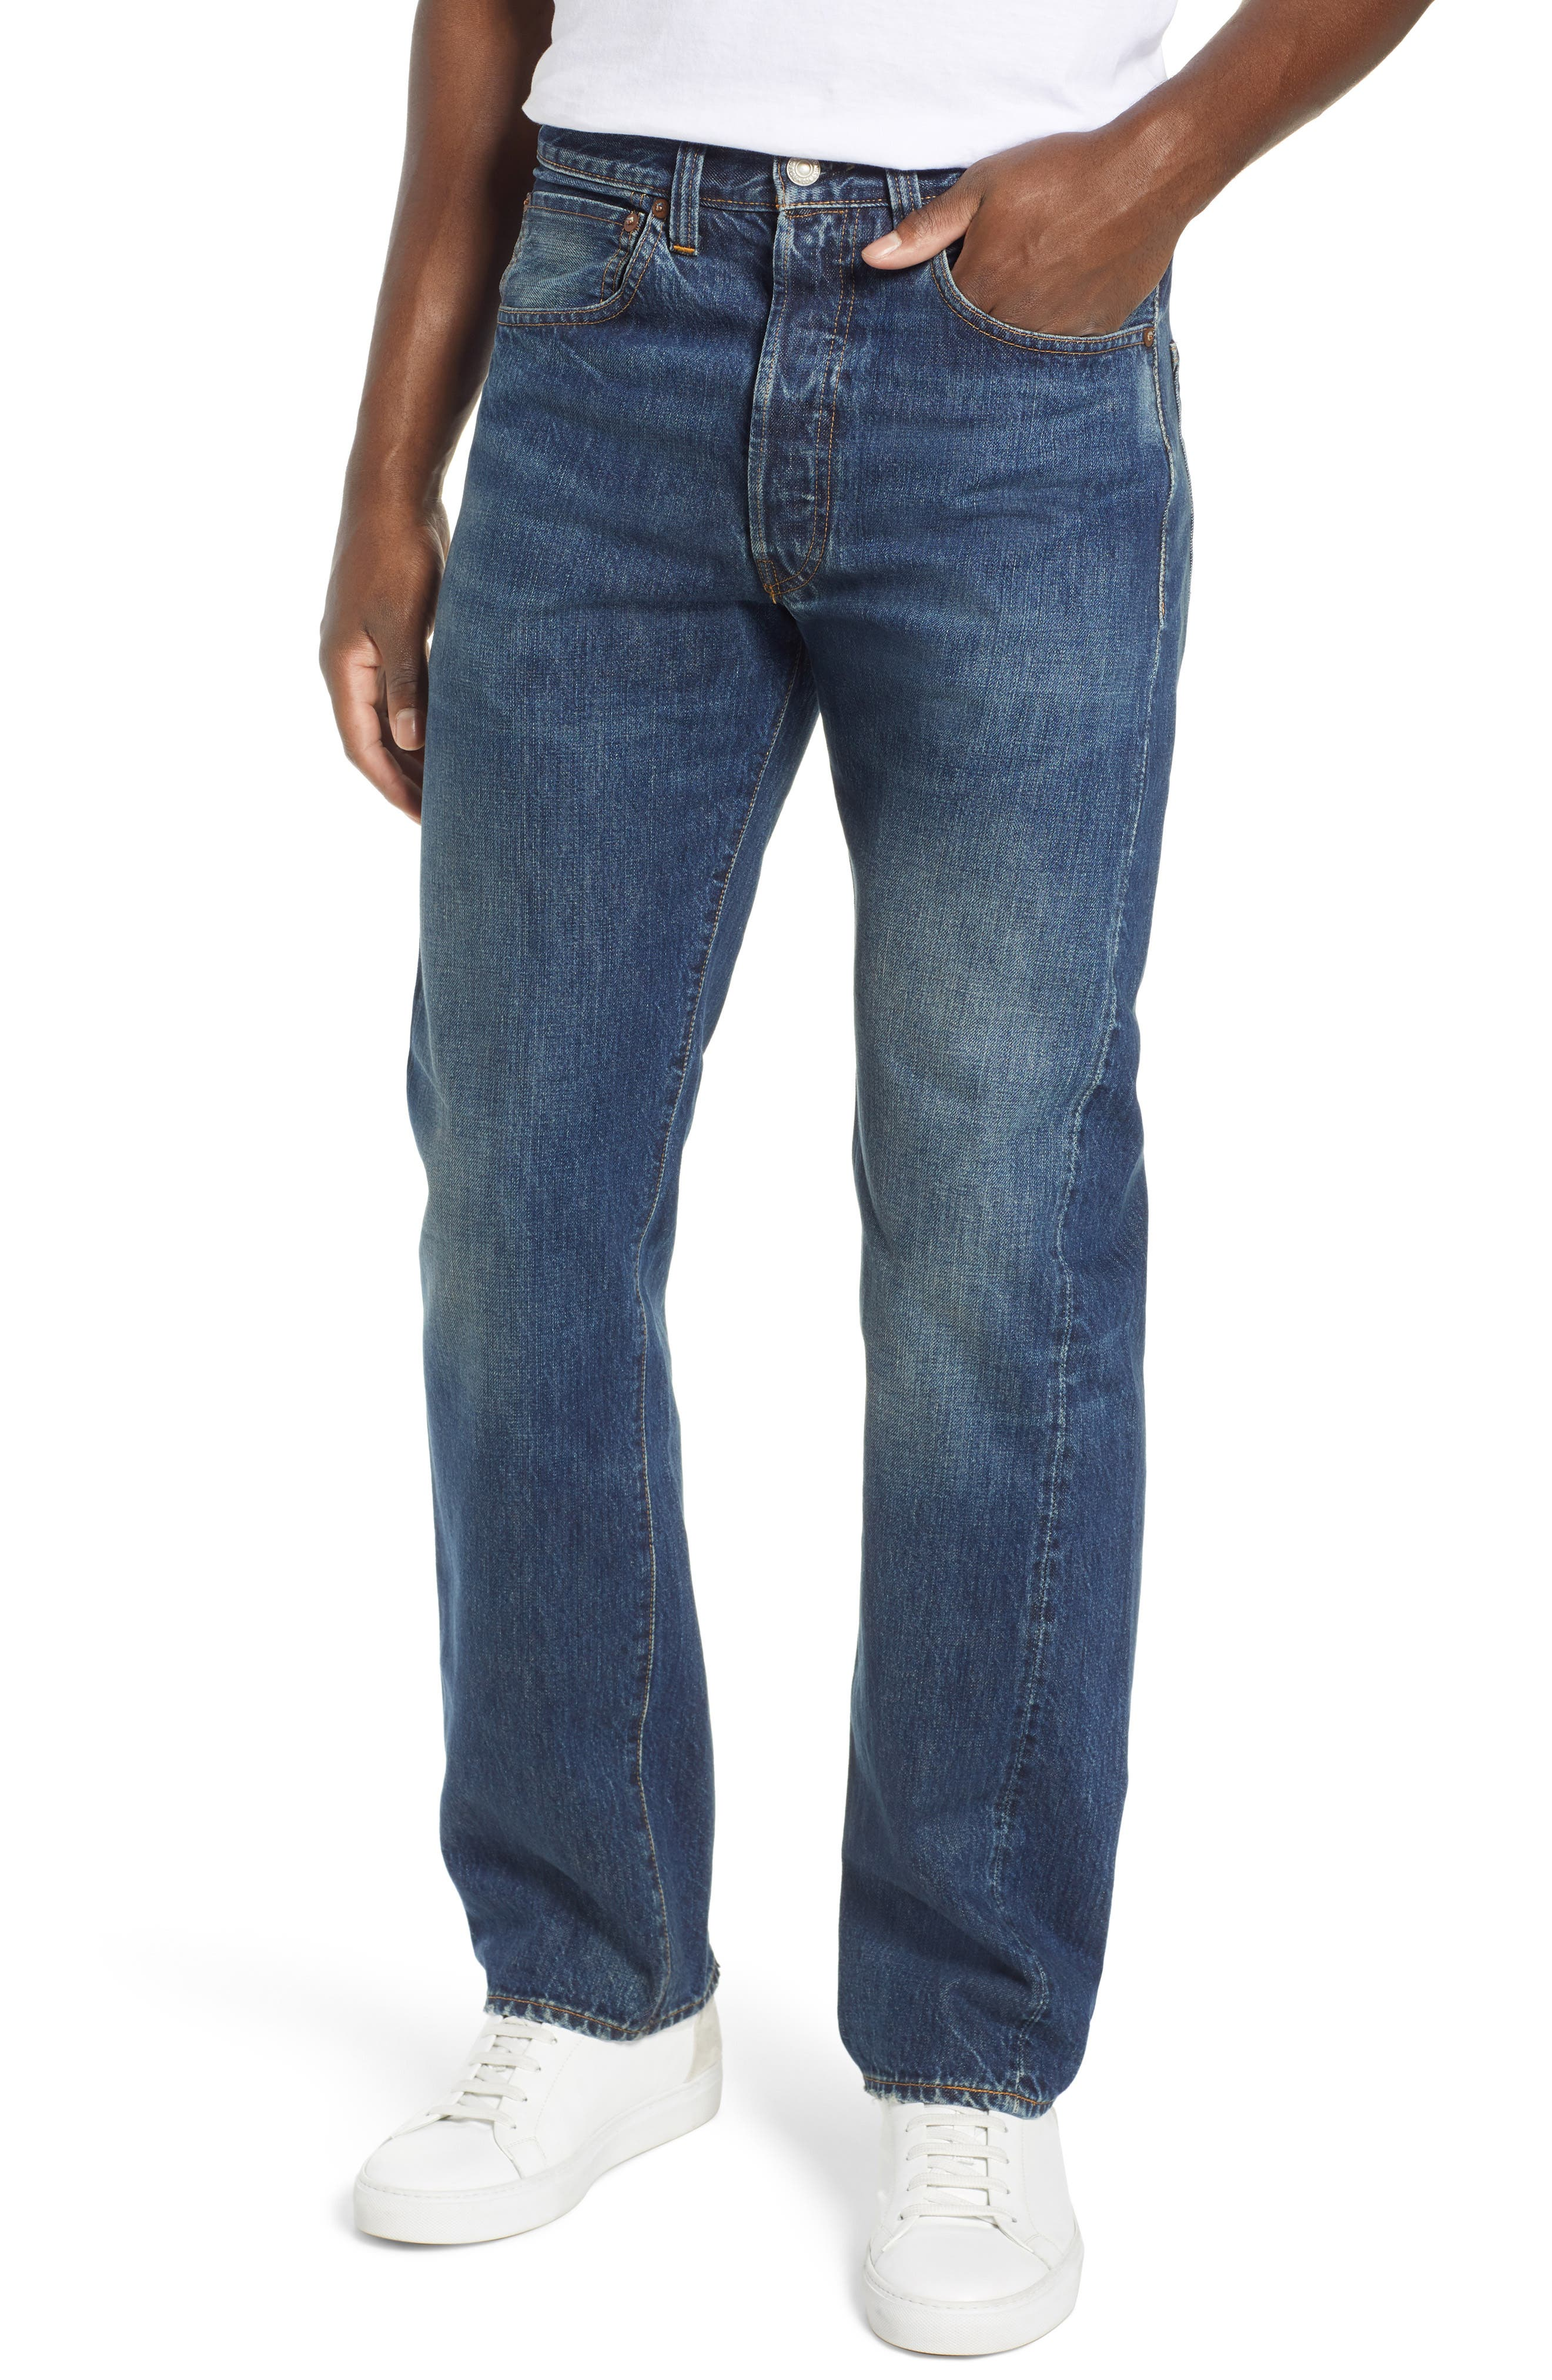 LEVI'S<SUP>®</SUP> VINTAGE CLOTHING, 1947 501<sup>®</sup> Straight Leg Jeans, Main thumbnail 1, color, 402